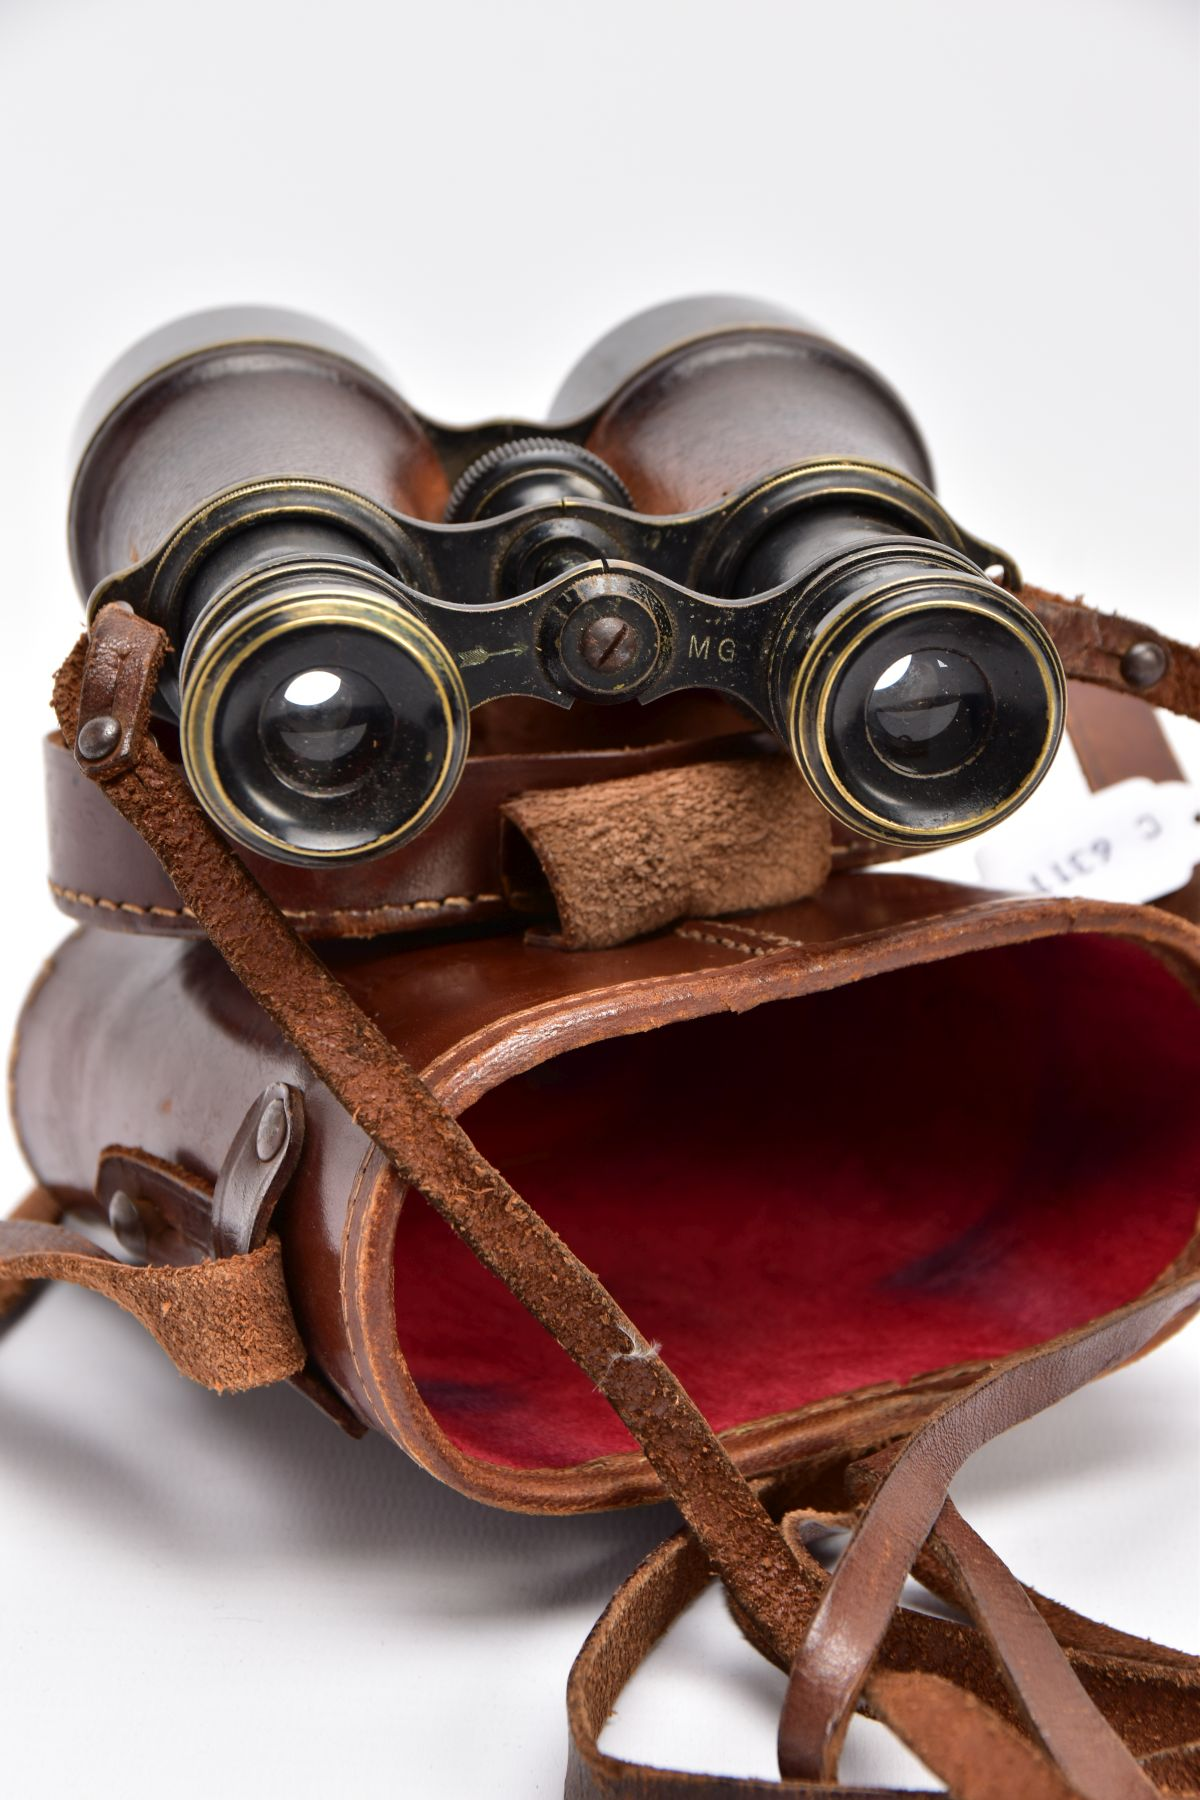 A BOXED PAIR OF FRENCH MADE MG (MINISTERE LA GUERE) WWI BINOCULARS, which are marked Mk V SPL & - Image 6 of 7